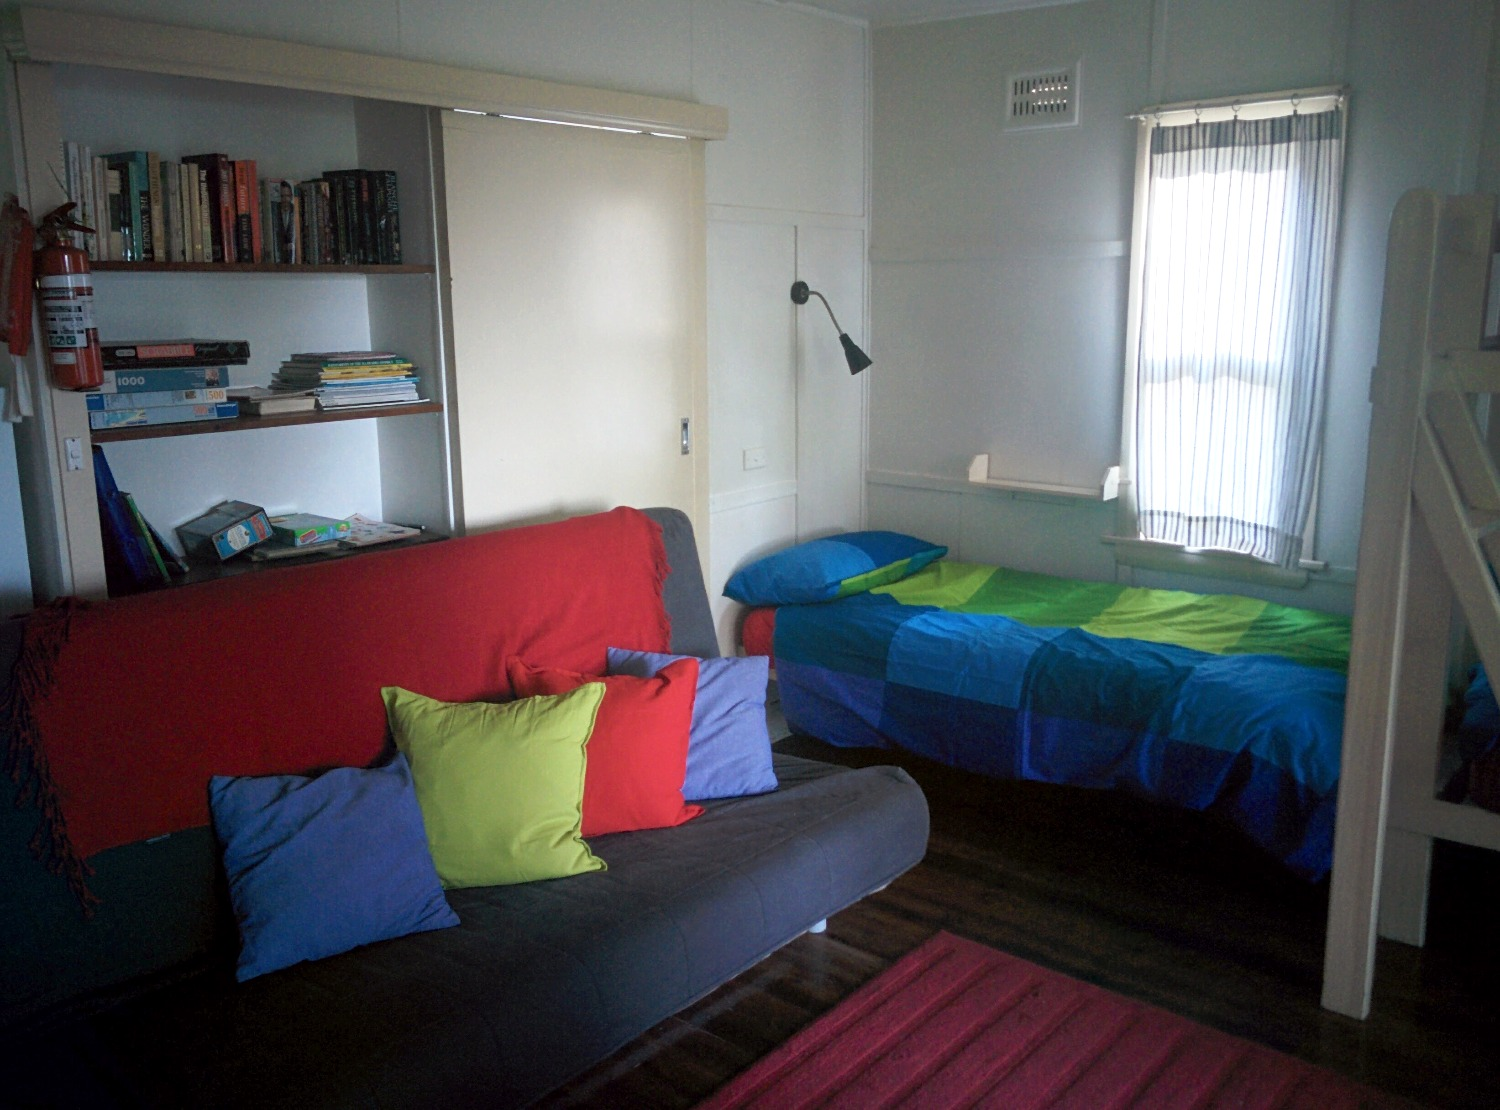 Cabin 2's sofa bed and one bunk